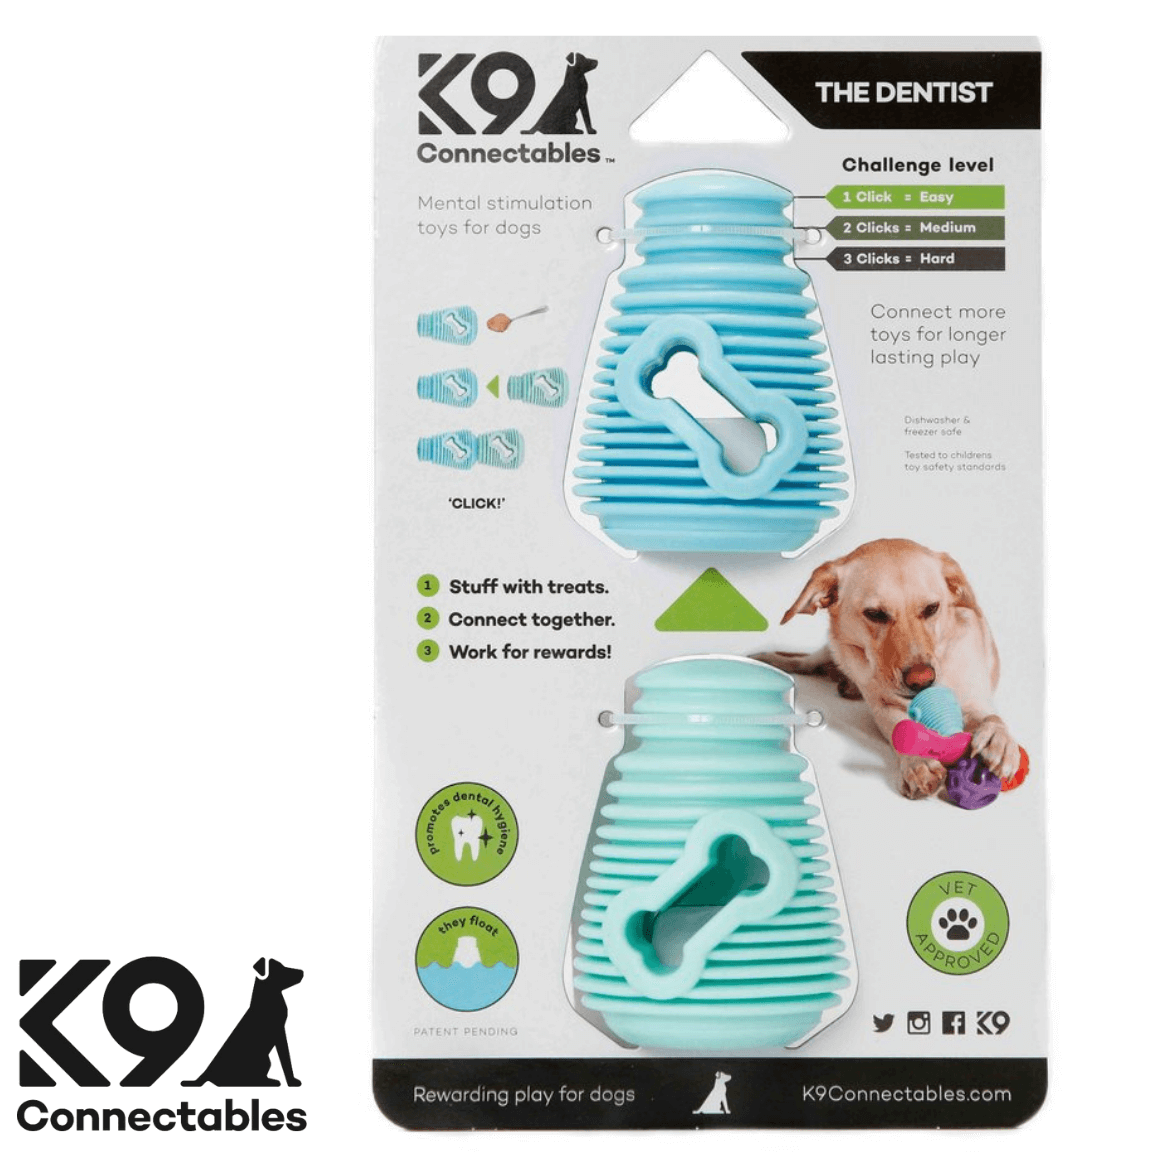 K9 Connectables Australia - The Denist Blue Teal